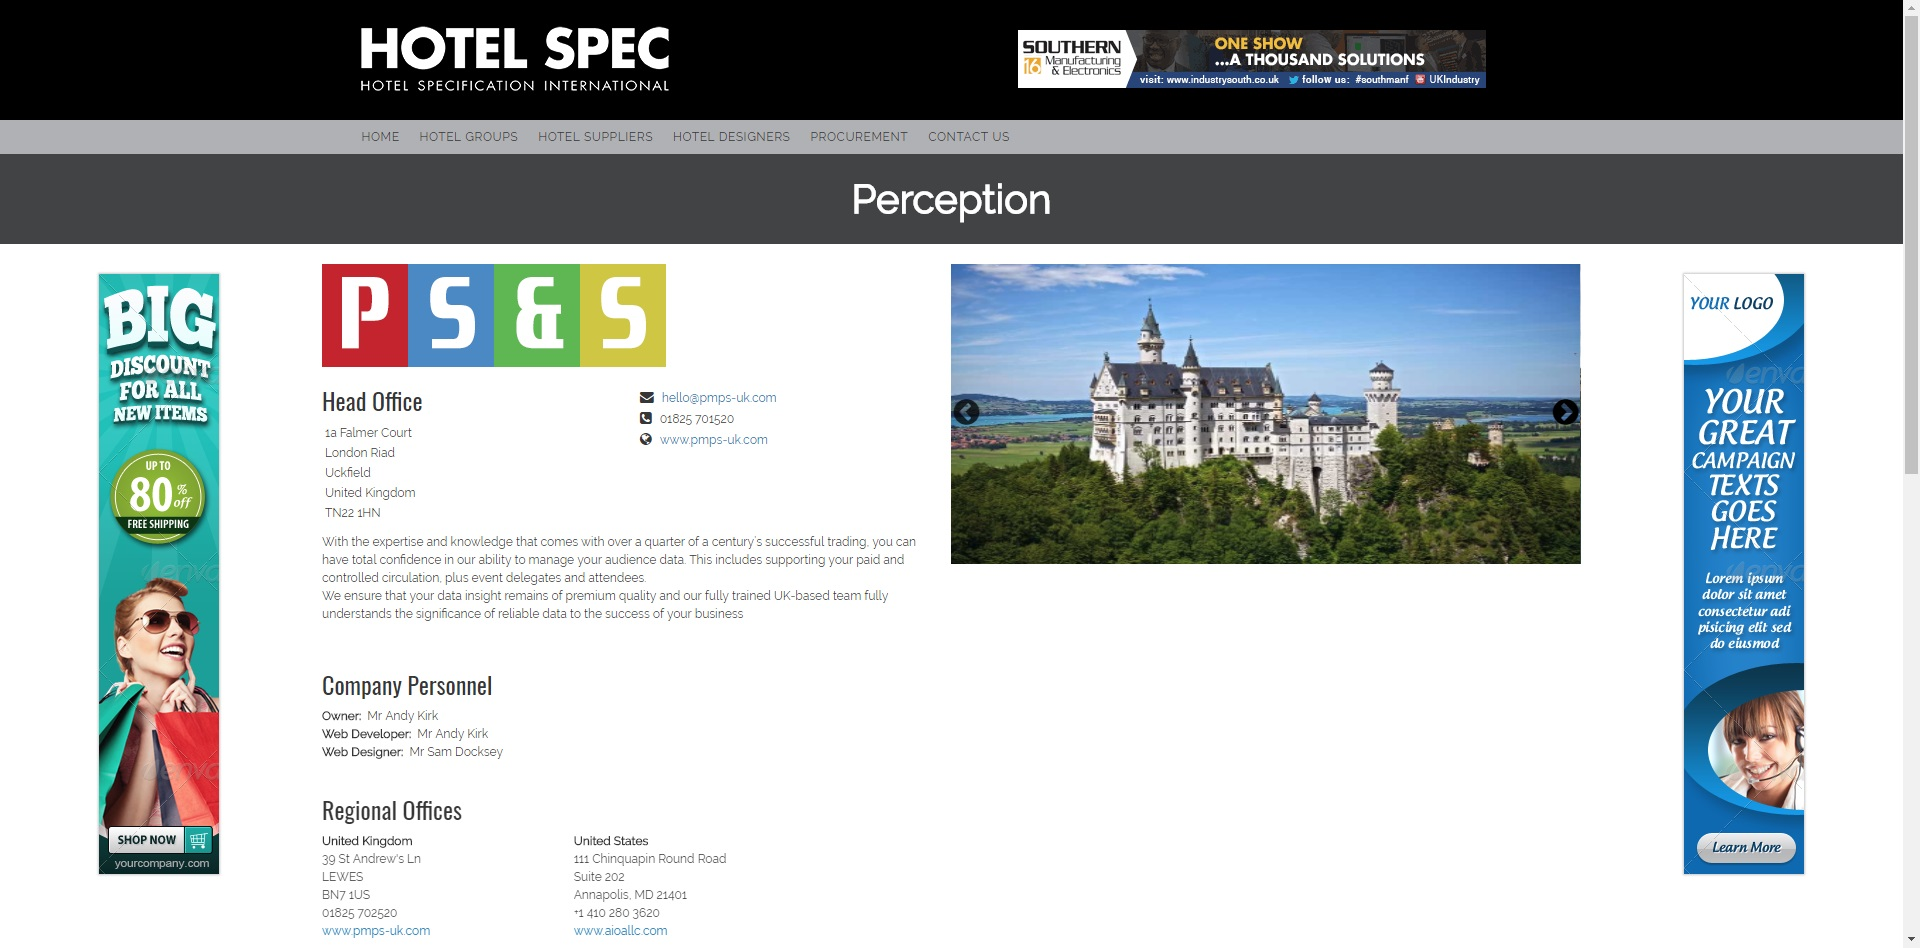 Hotel Spec Online Company Page